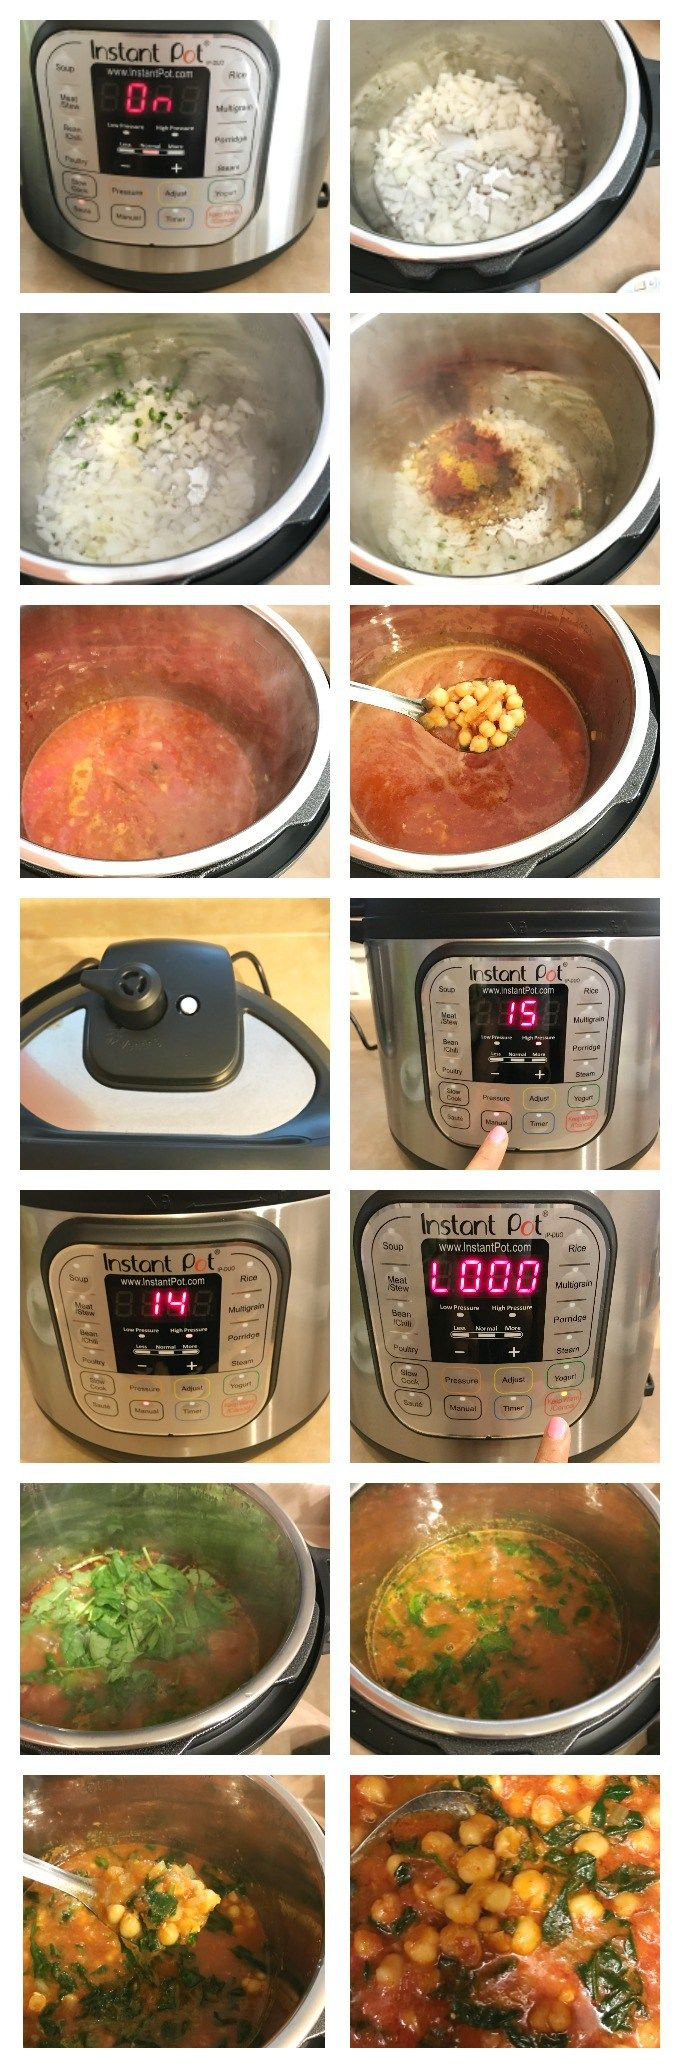 Instant Pot spinach chana masala - vegan & gluten-free makes a healthy weeknight meal . Instant pot chickpea curry from scratch makes a delicious meal .